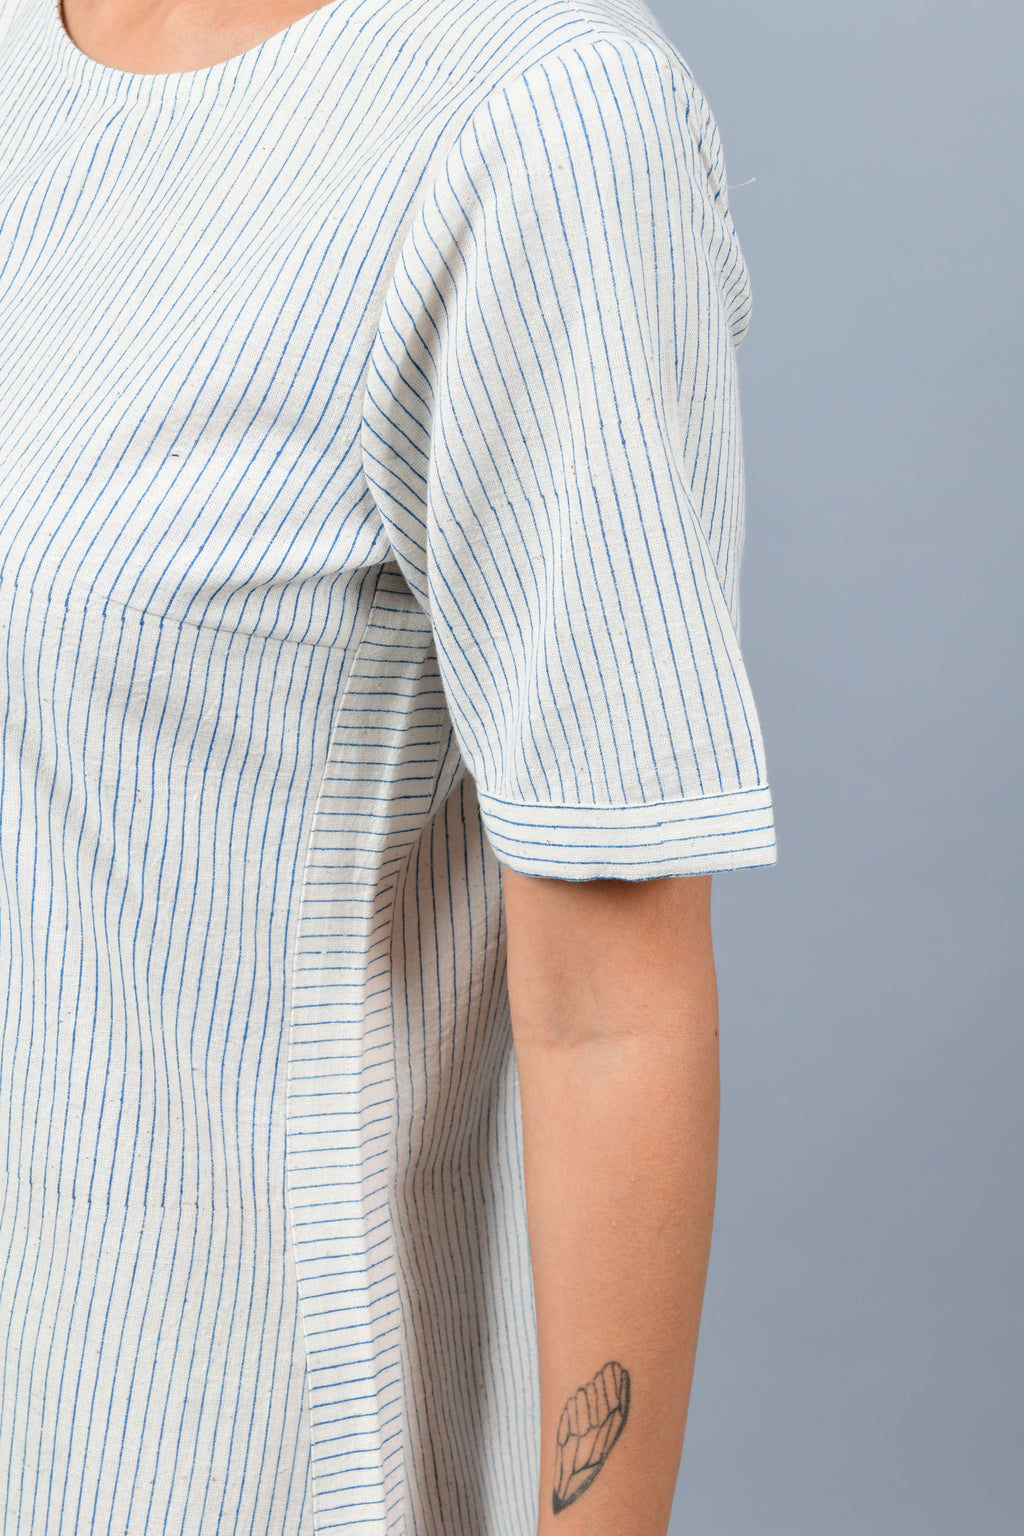 close-up of a womenswear fashion model wearing minimalistic a-line round bottom dress by Cotton Rack printed with blue stripes using brass block printing over handspun handwoven khadi cotton from maheshwar